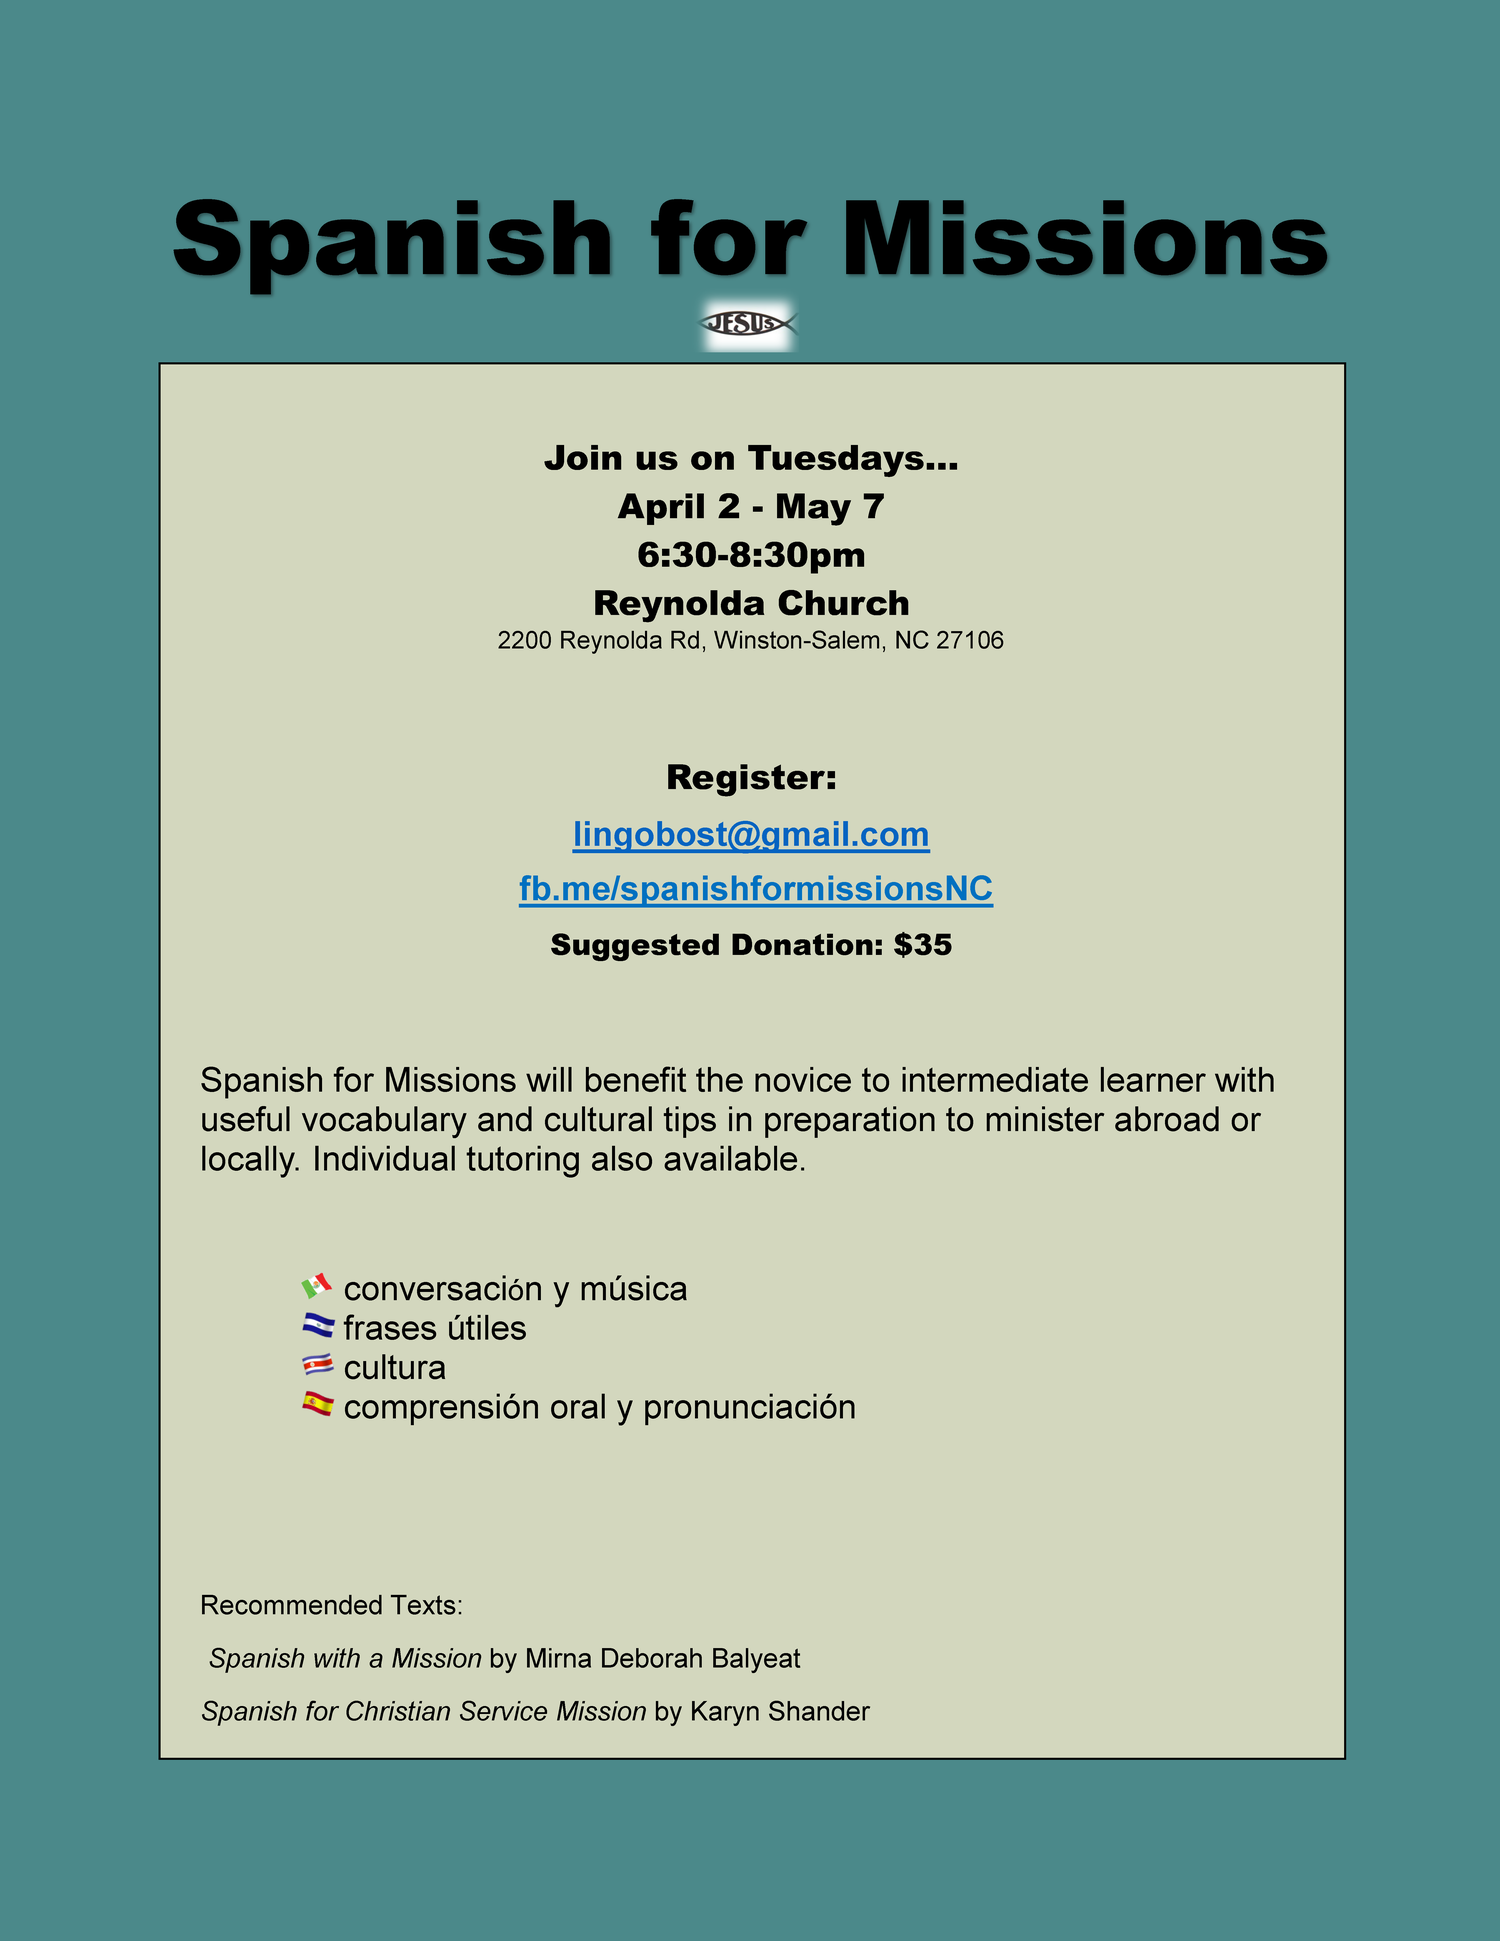 Spanish+fof+Missions+Flyer.png